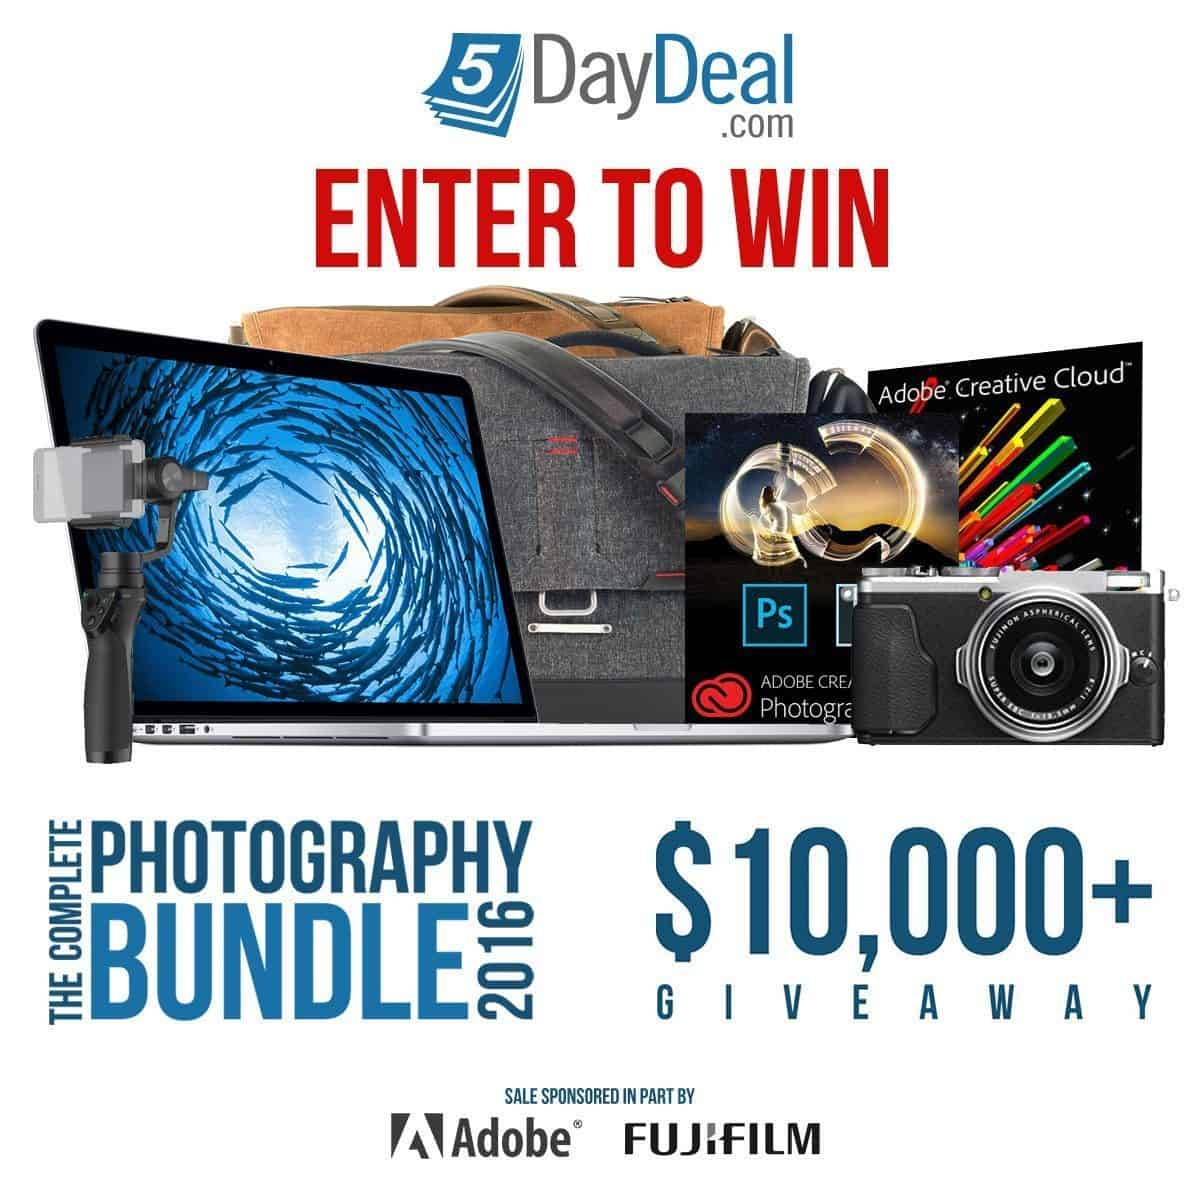 5DayDeal 2016 Giveaway!